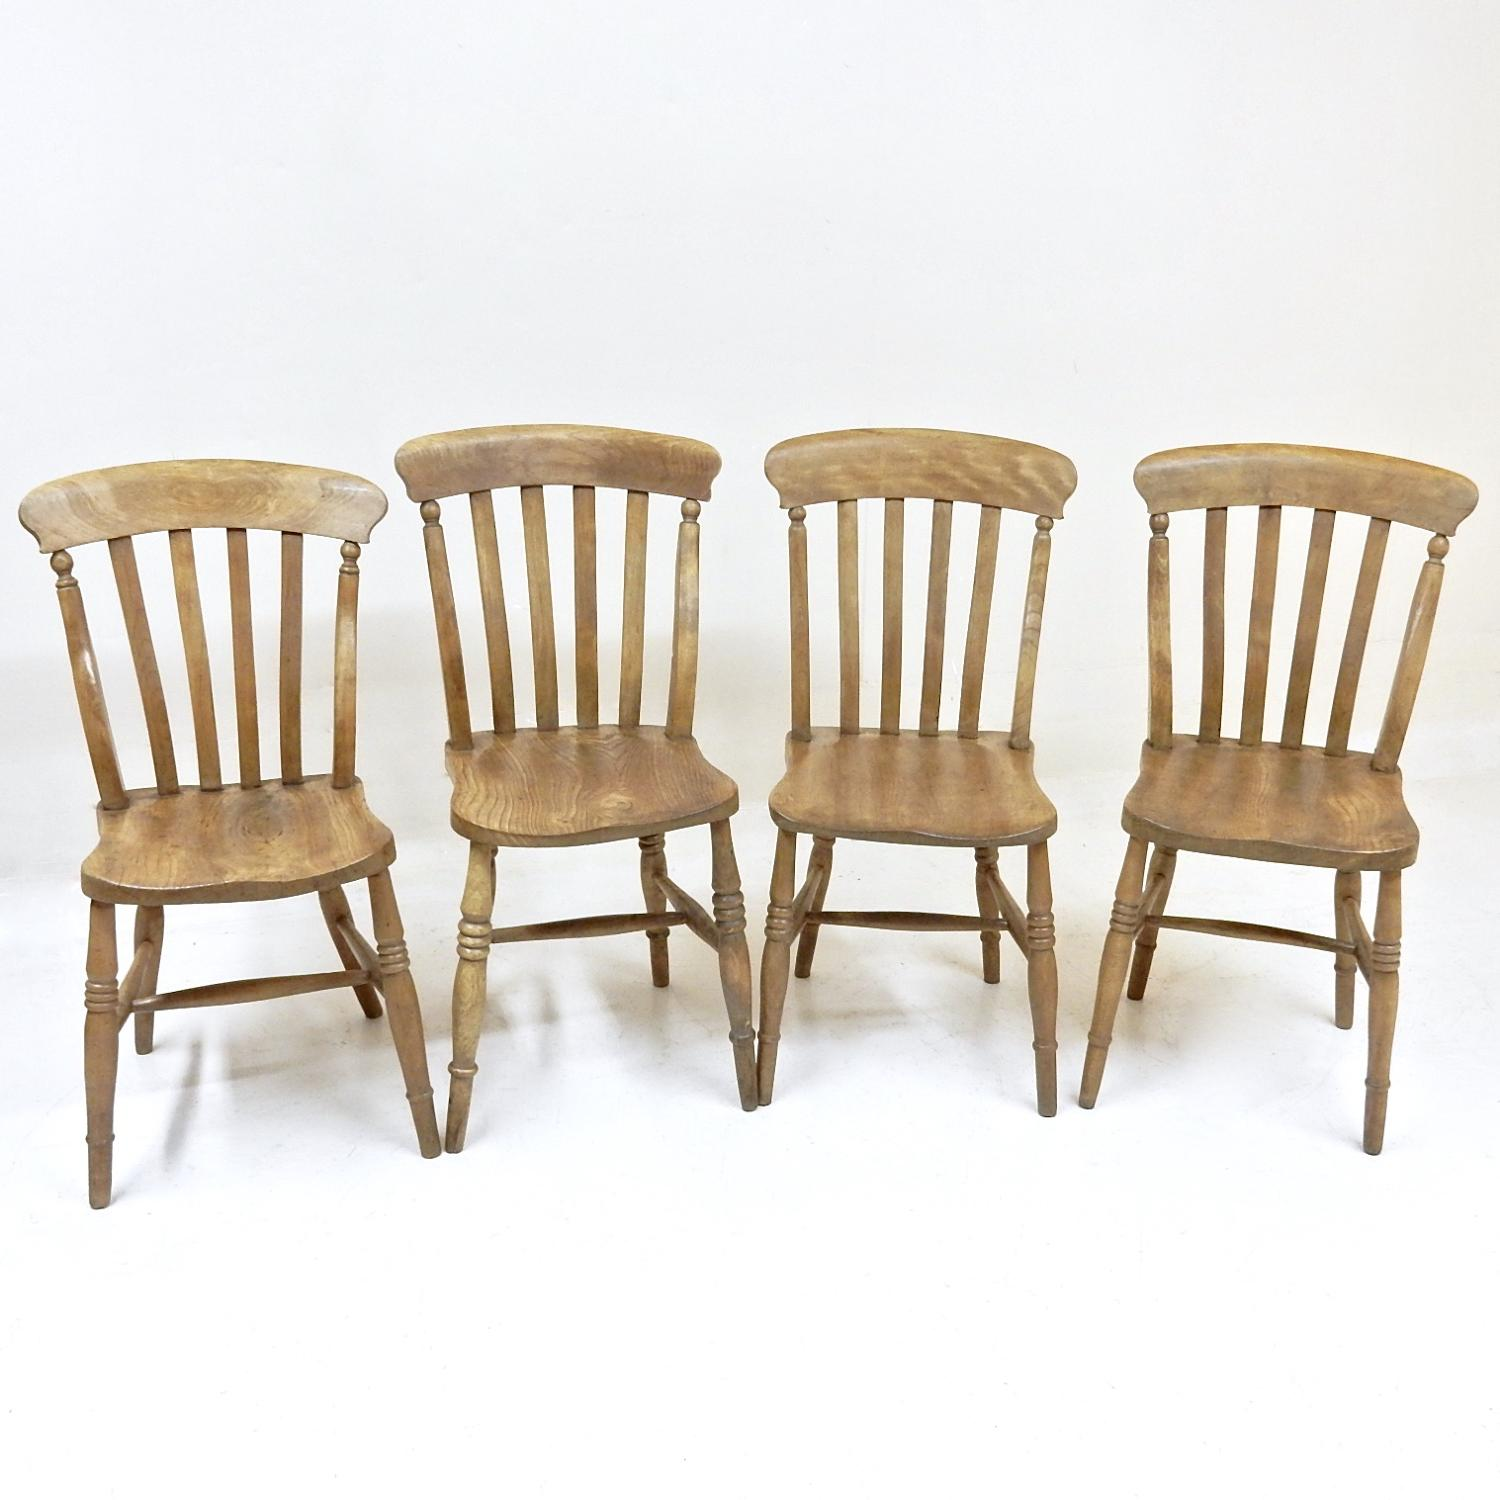 Antique Kitchen Chairs